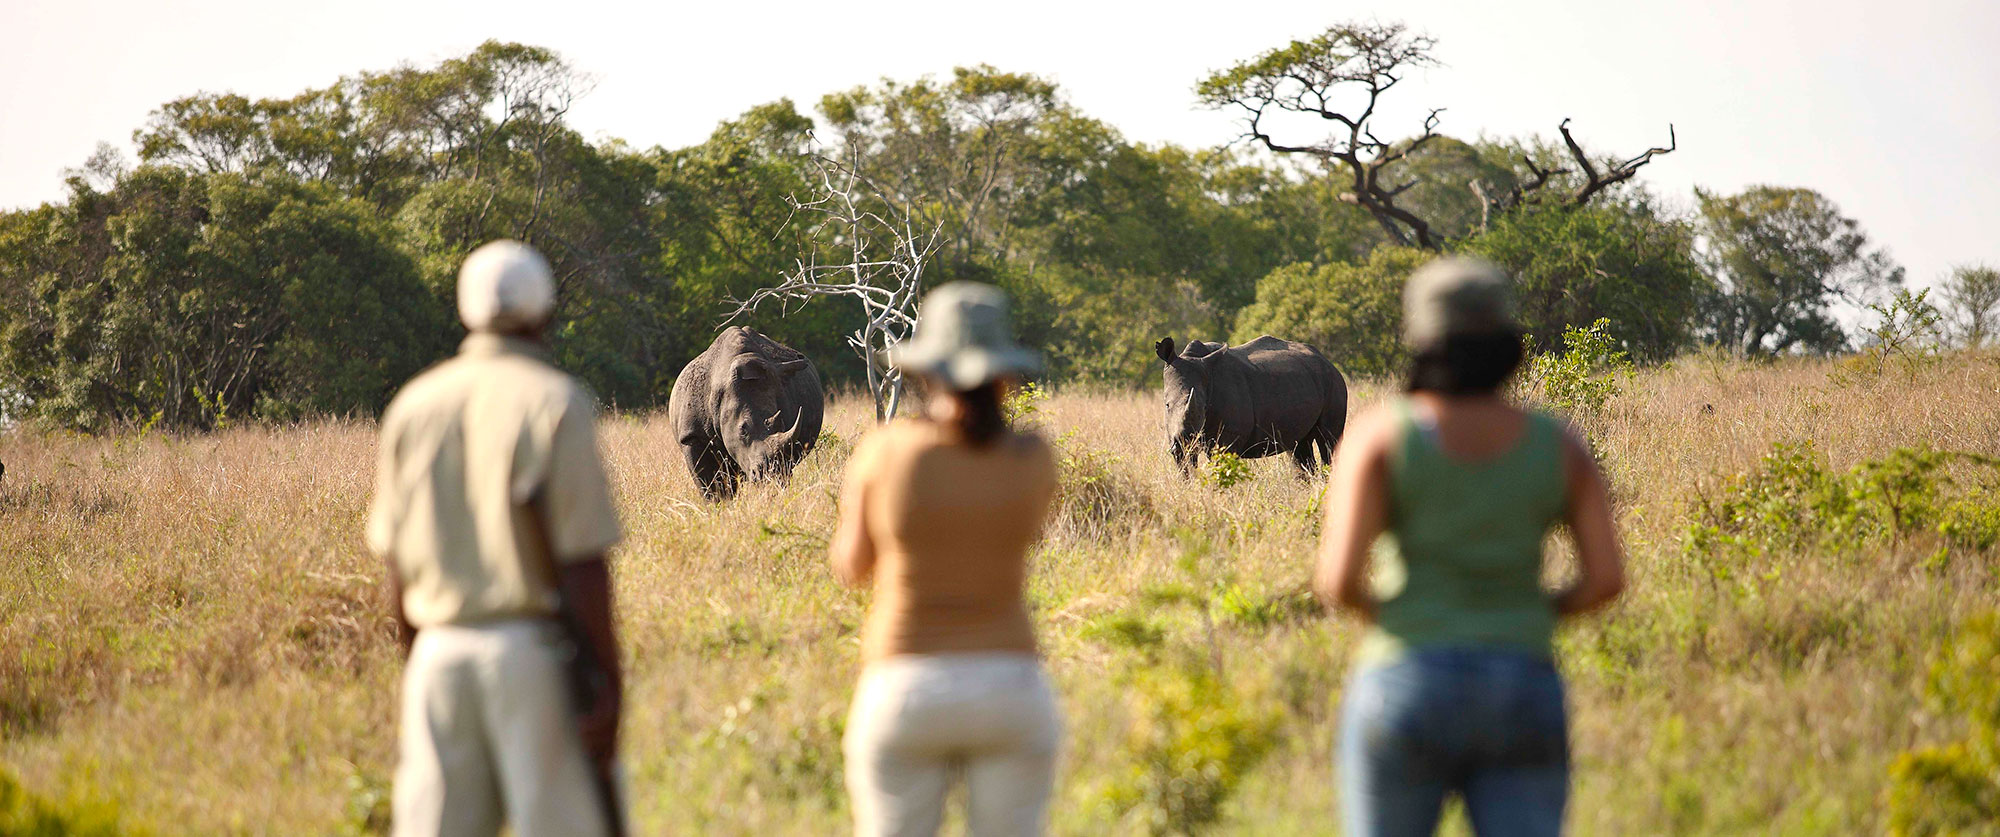 Africa Vacation Packages - African wildlife safari